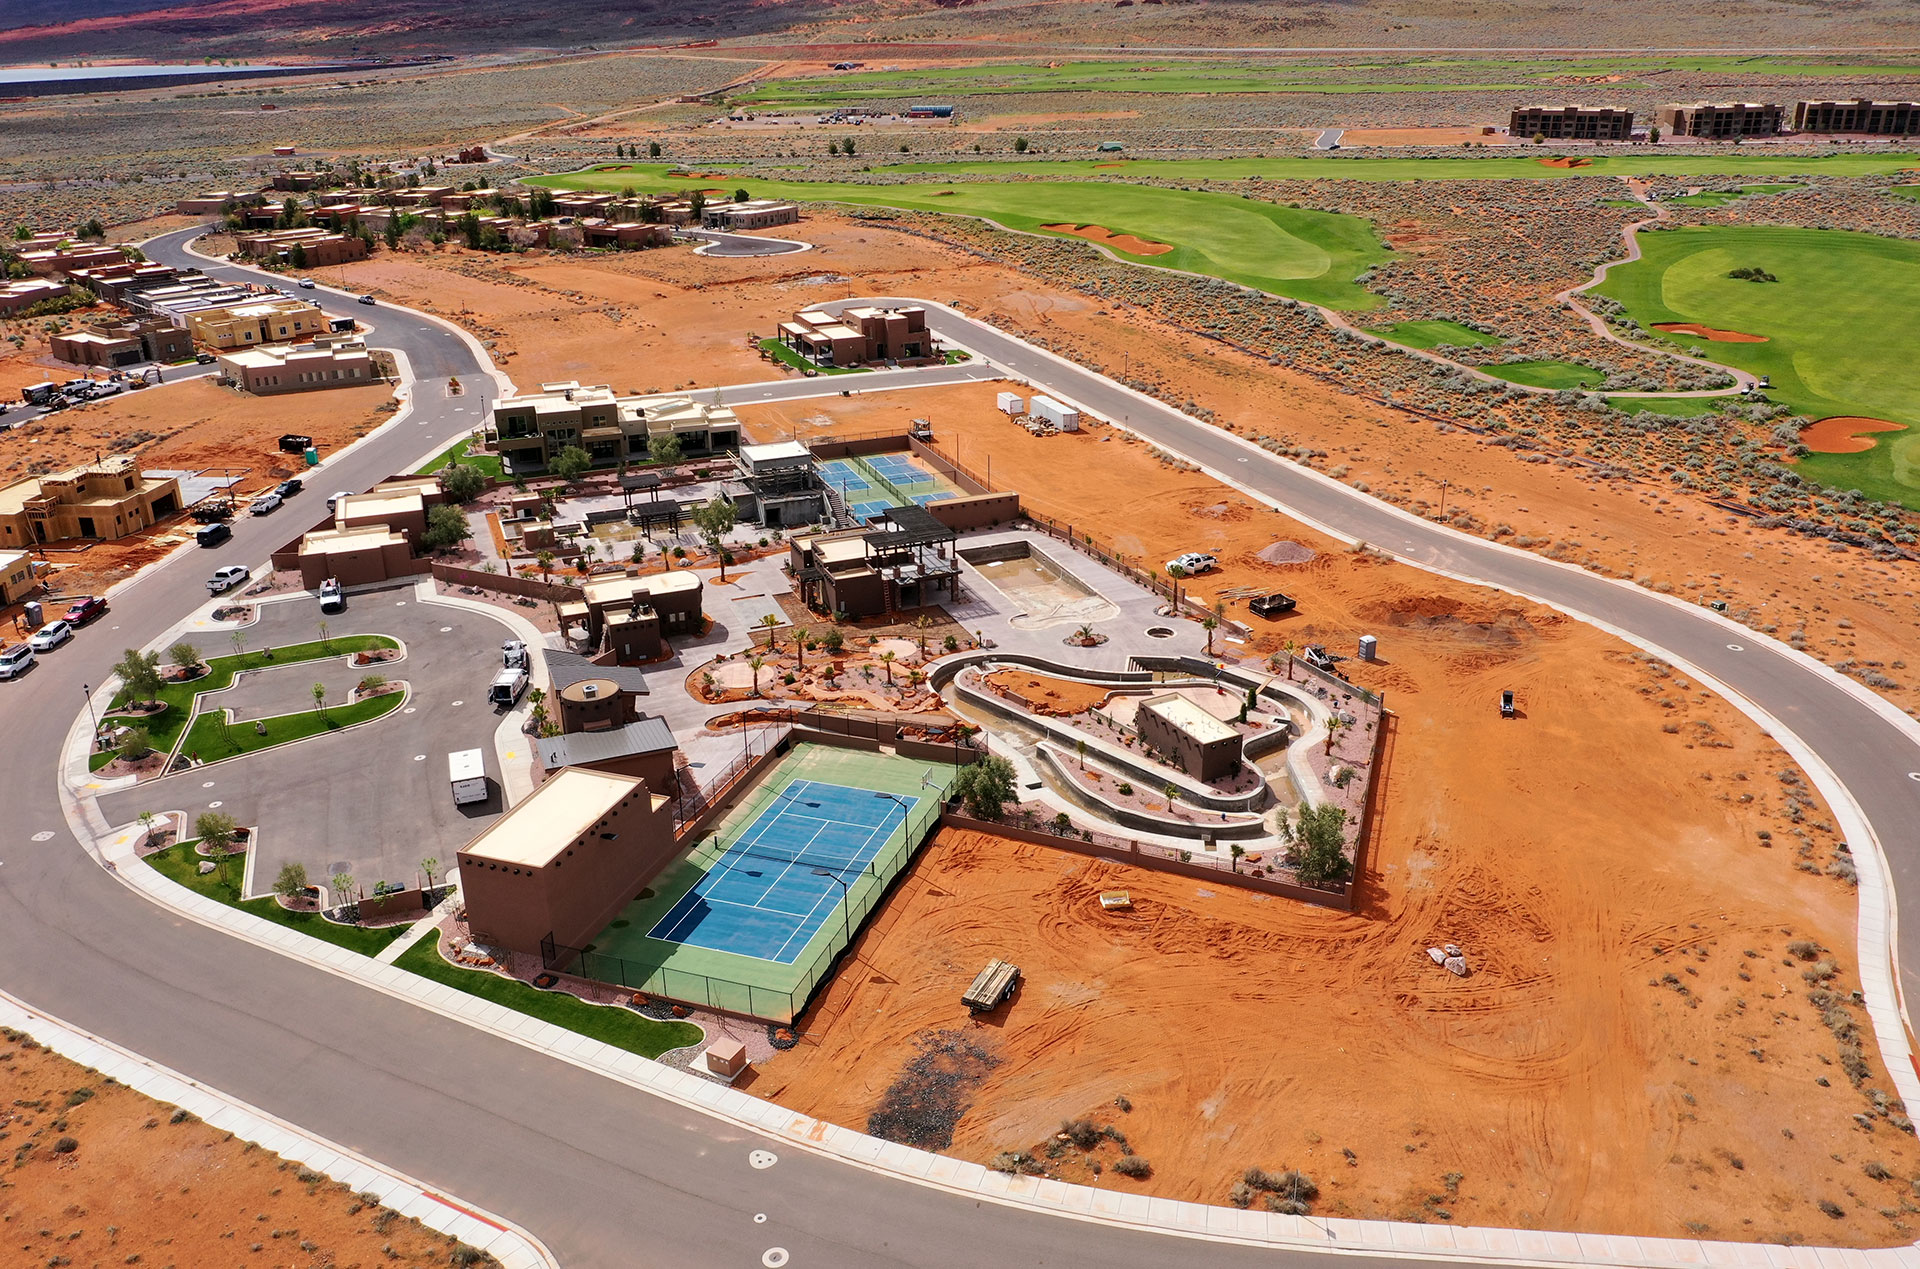 Tava Resort at Sand Hollow